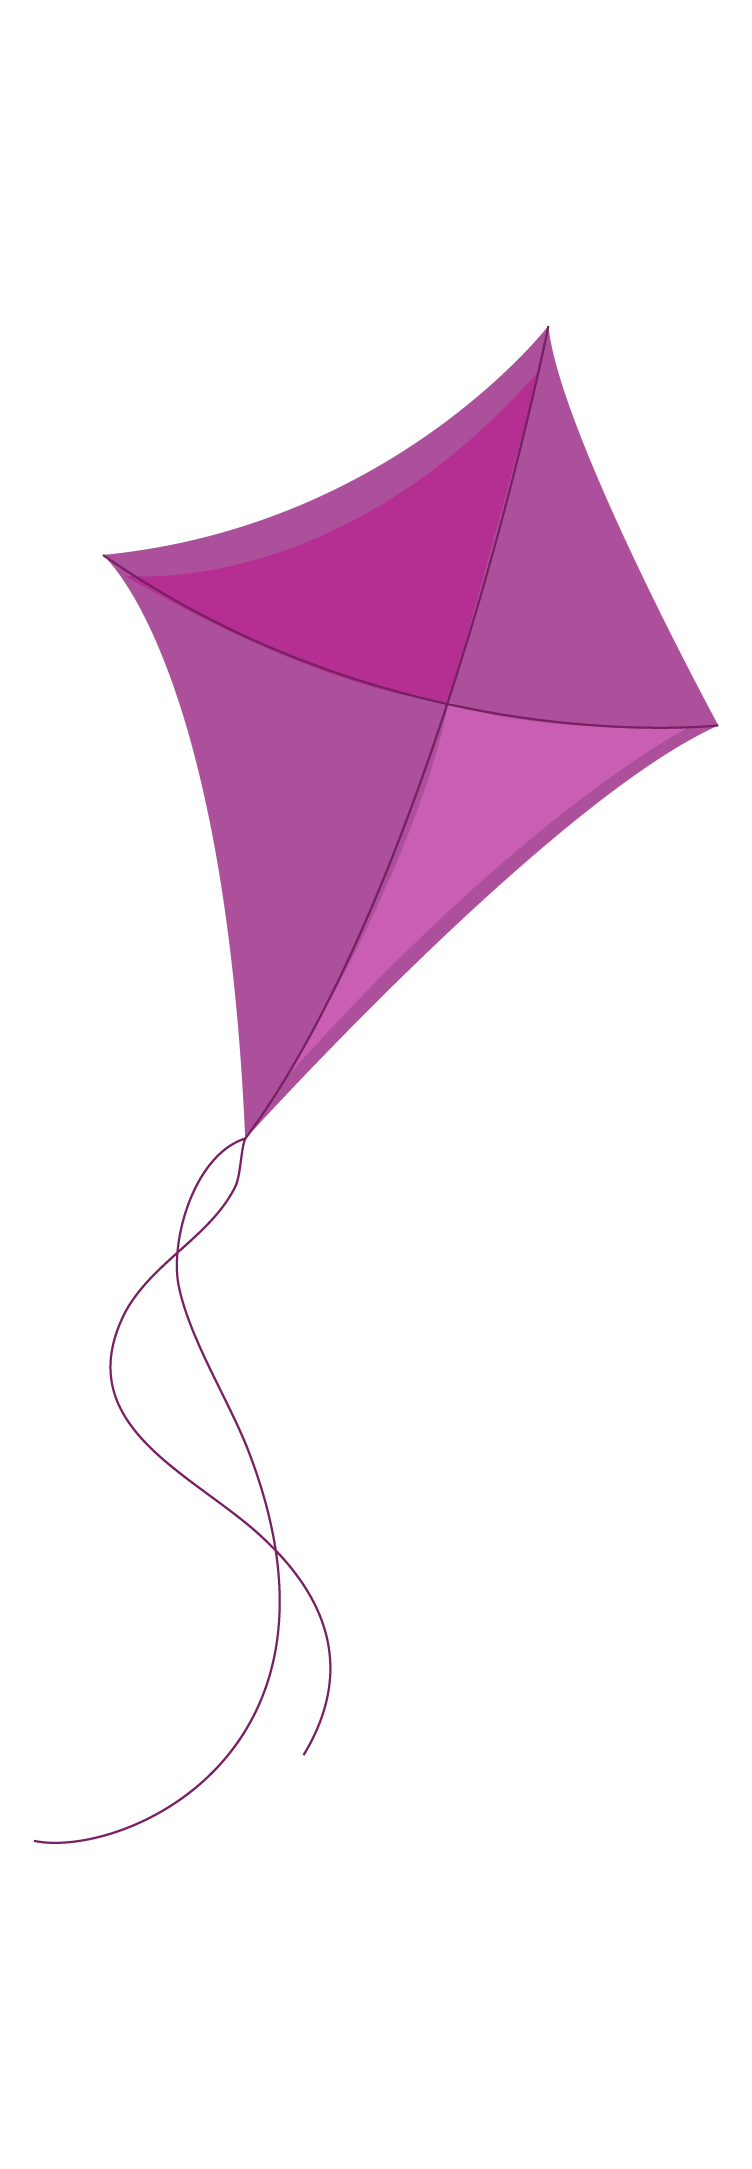 A purple kite